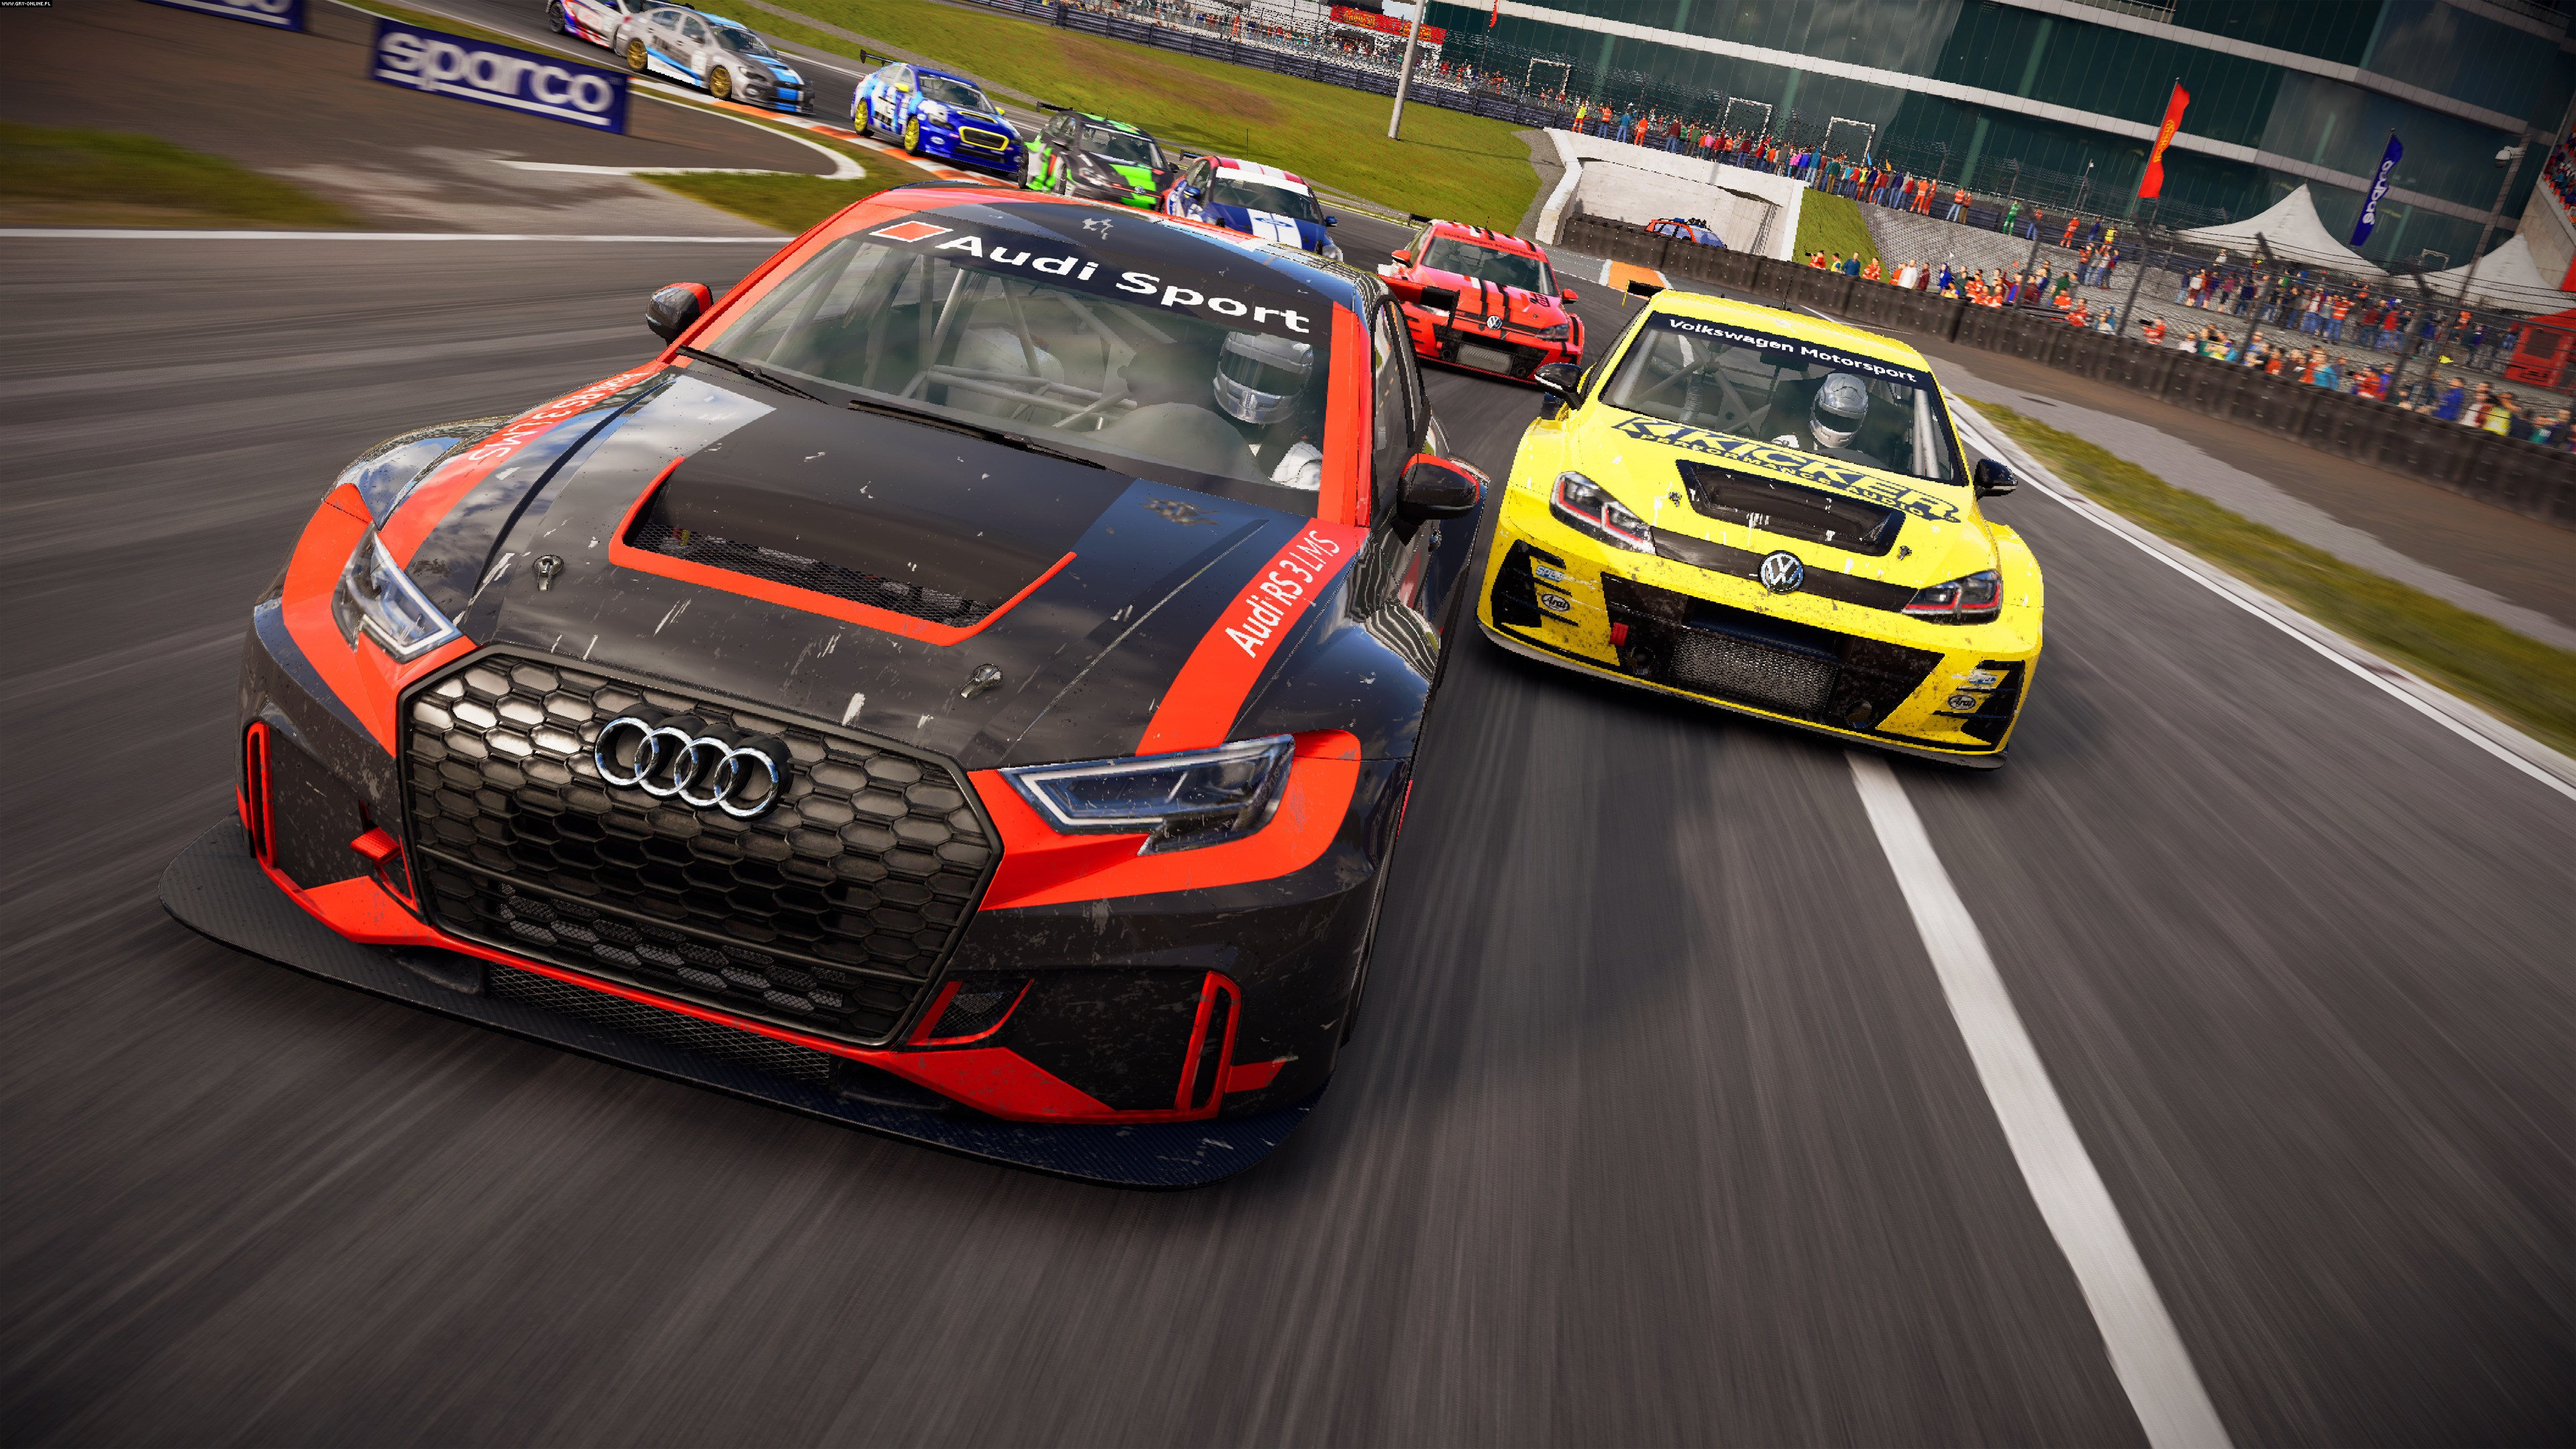 GRID PC, PS4, XONE Games Image 67/85, Codemasters Software